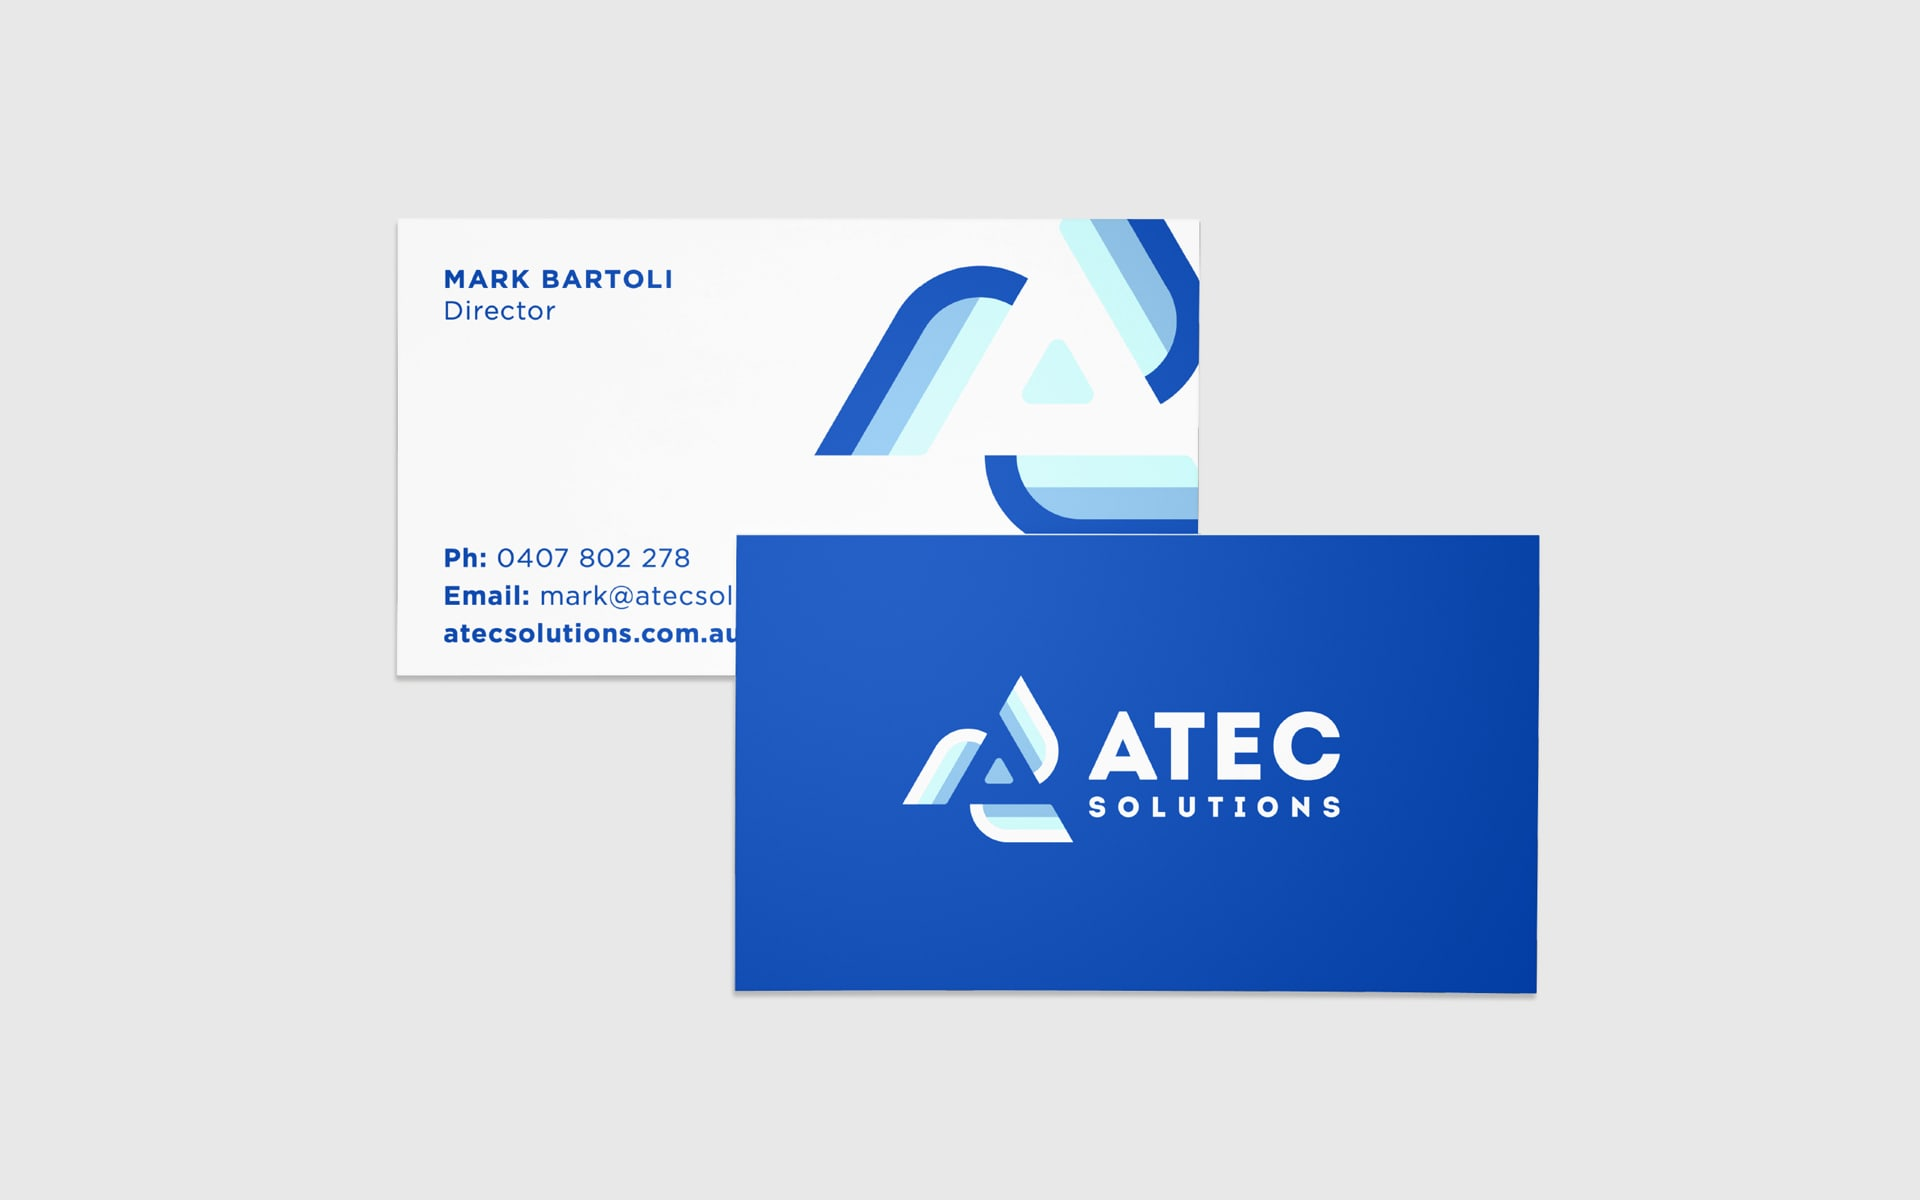 ATEC-Solutions-Business-Card-Design-9